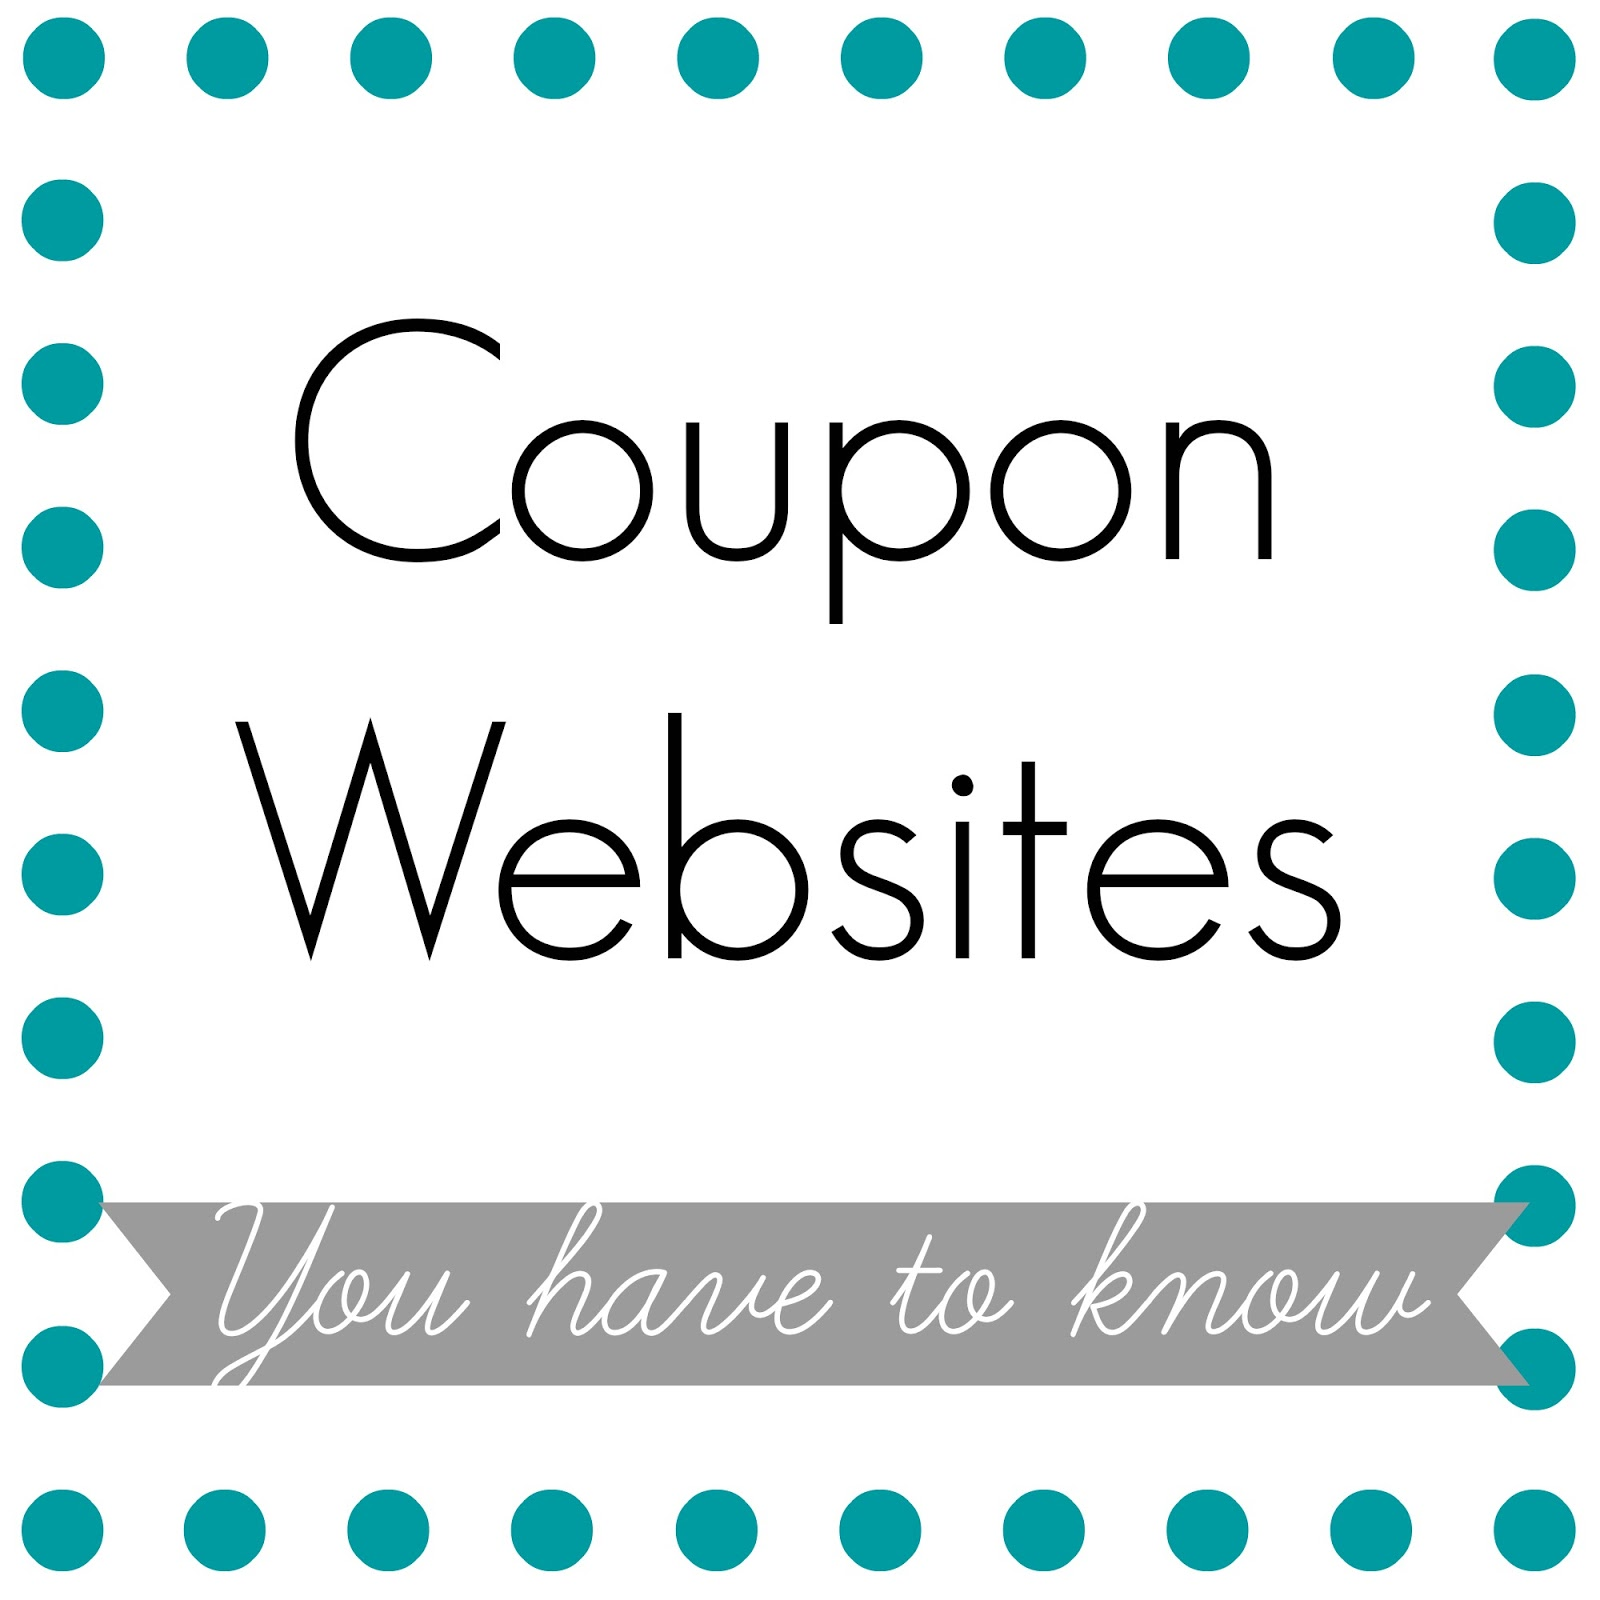 Discount coupons websites